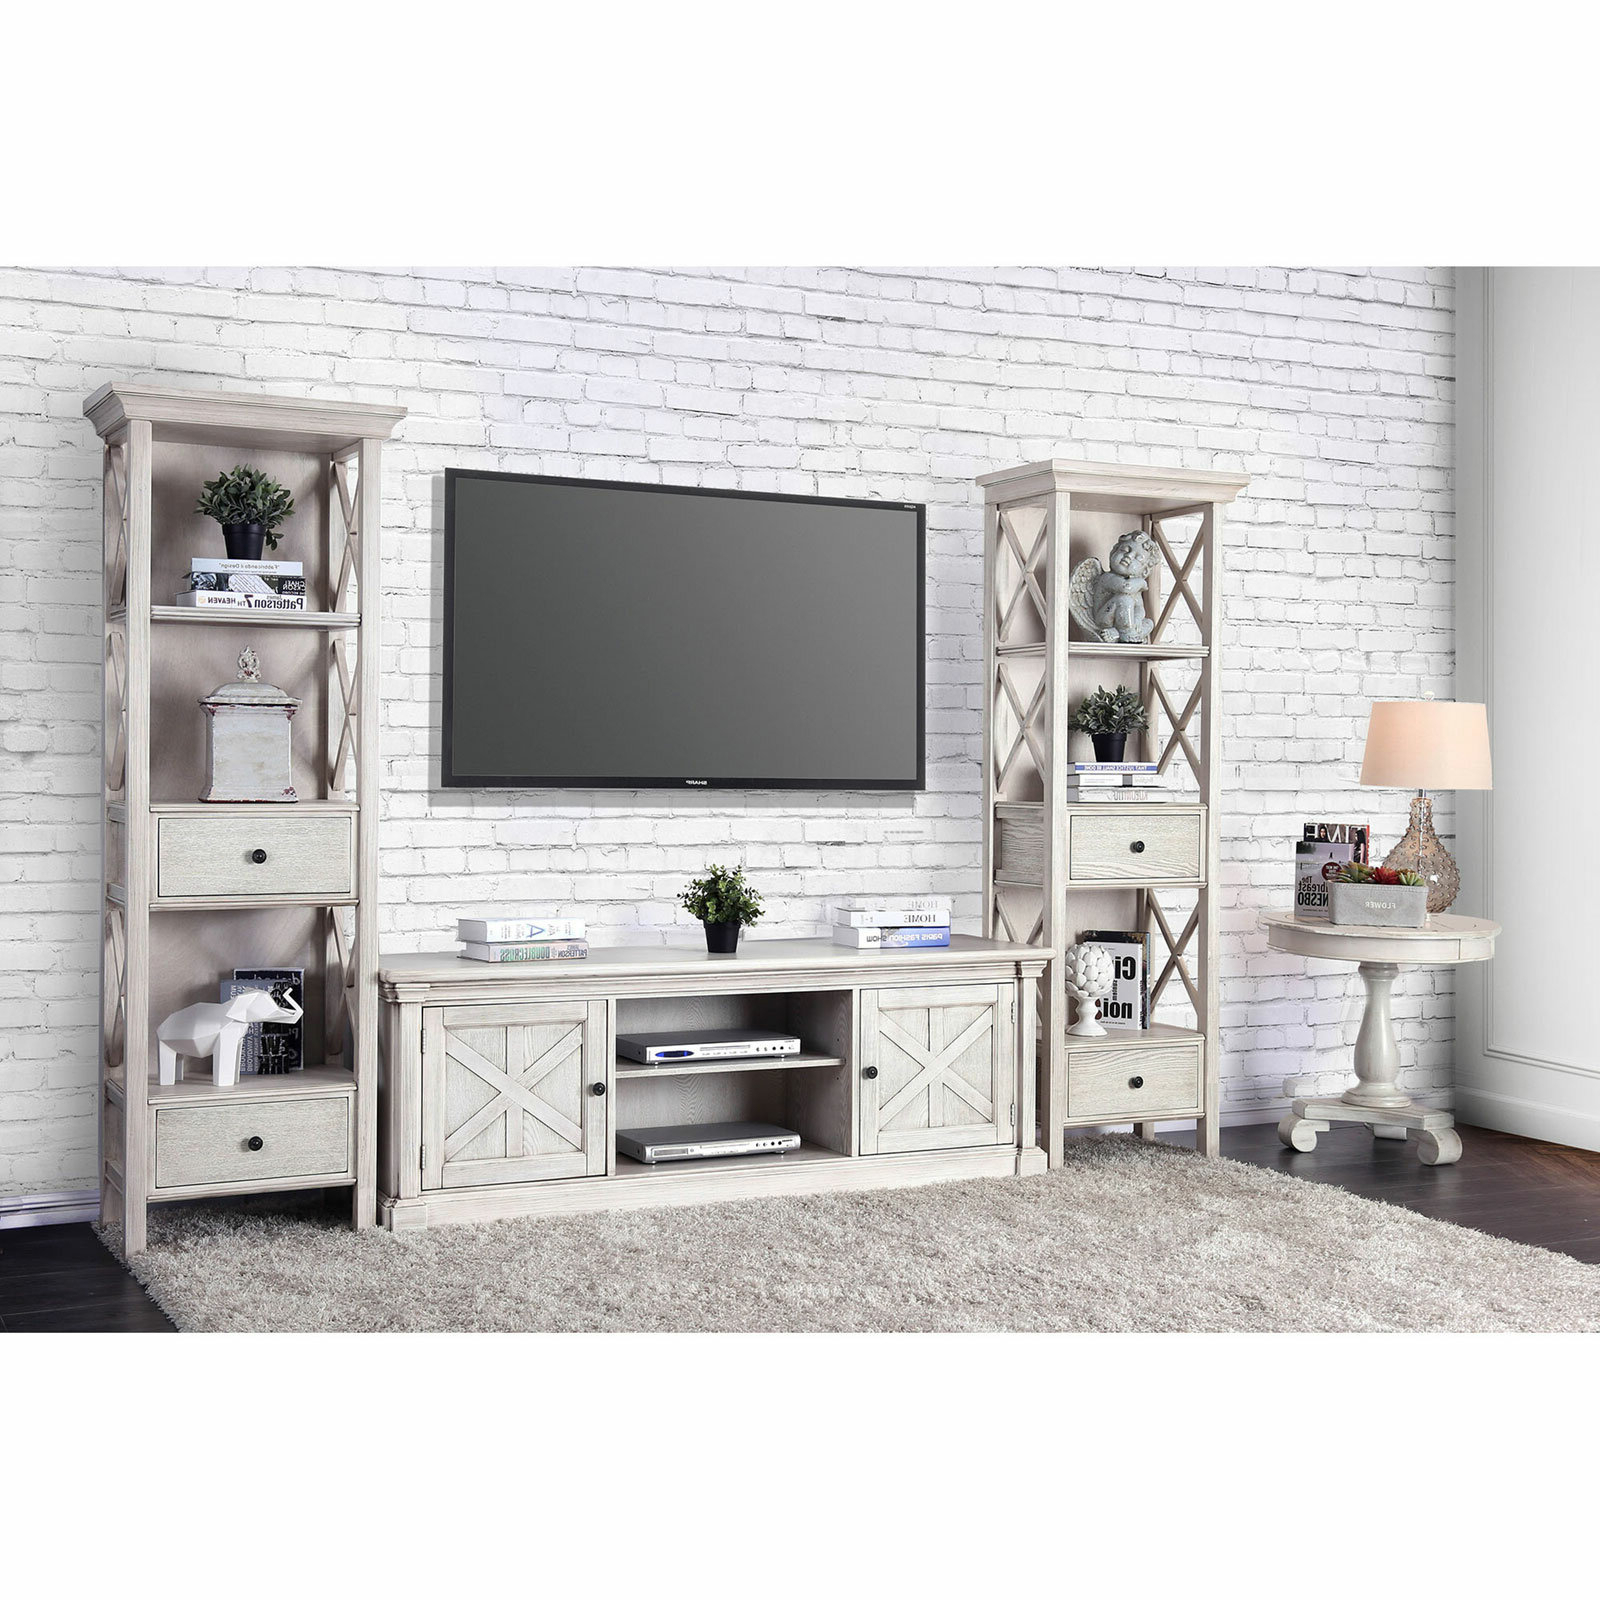 """Parmelee Tv Stands For Tvs Up To 65"""" Intended For Well Known Leandra Tv Stand For Tvs Up To 70"""" (View 18 of 20)"""